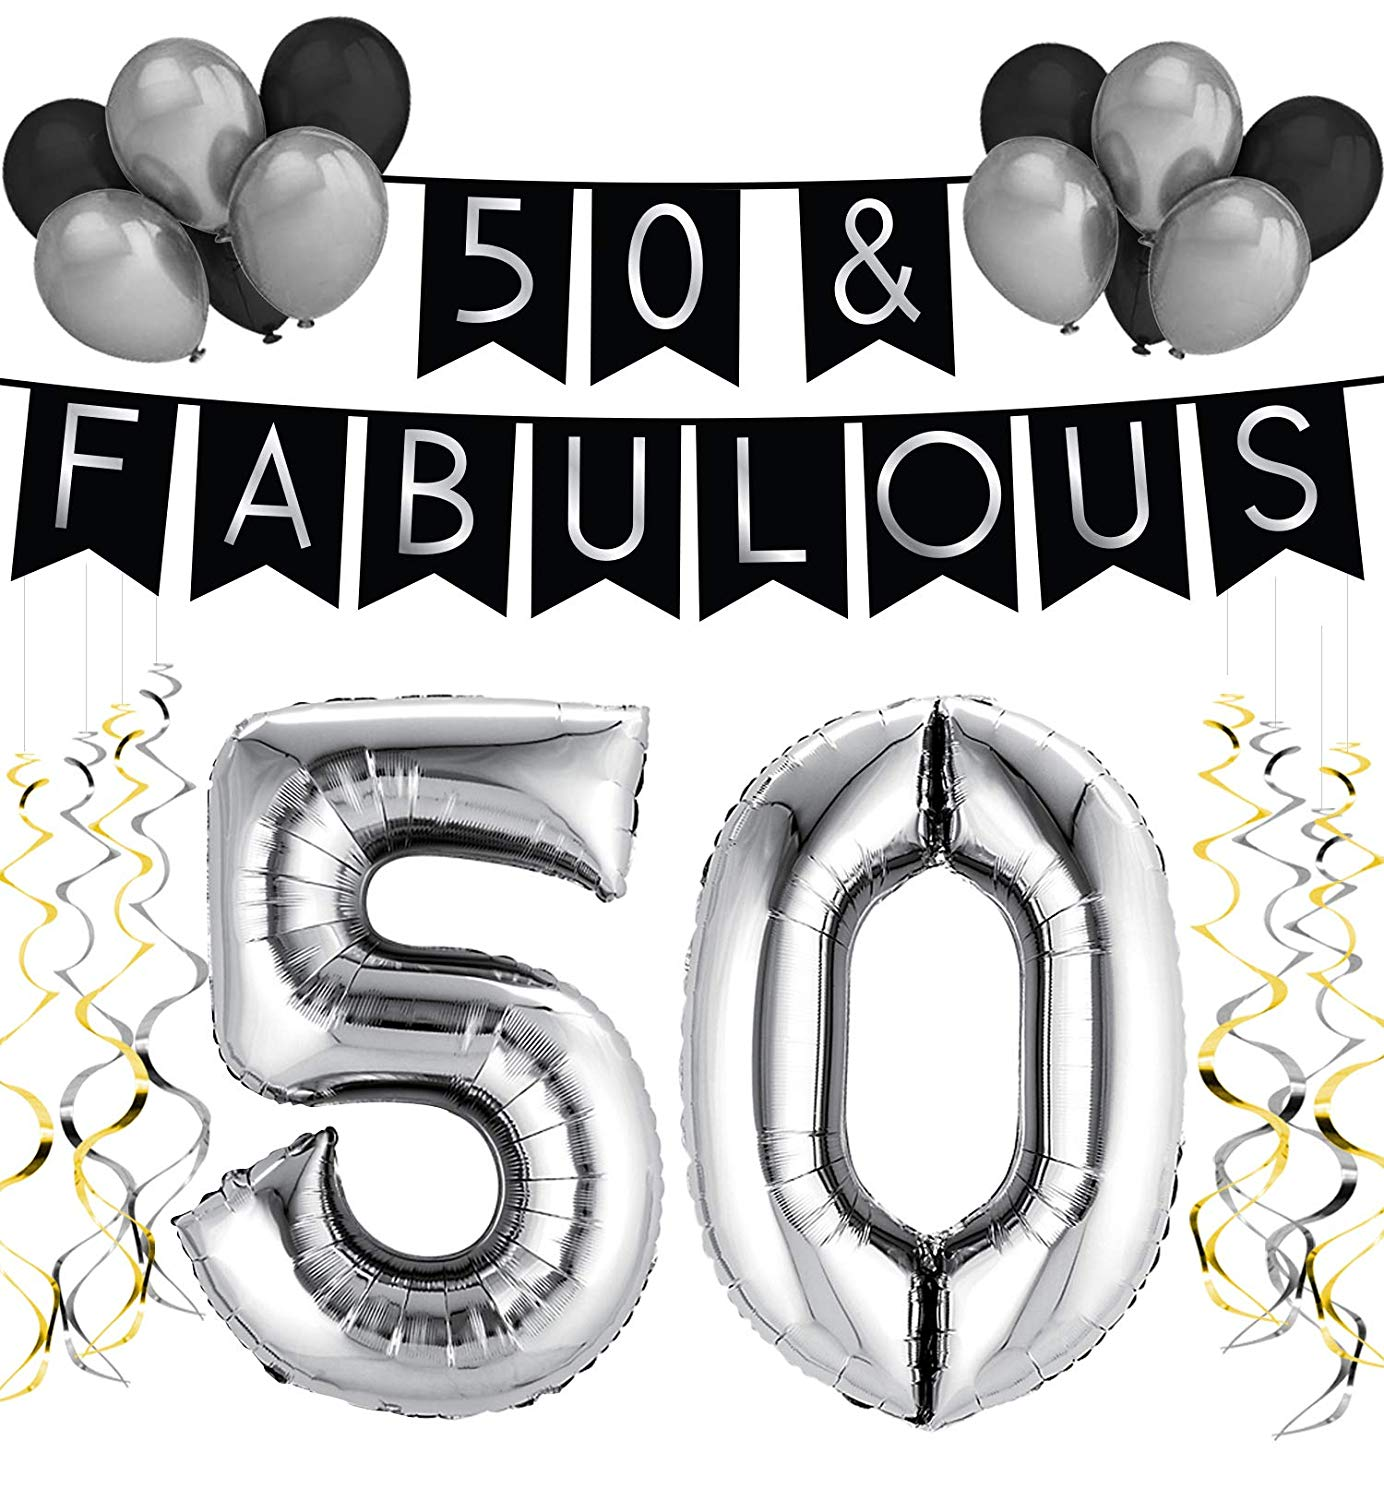 50 & Fabulous Birthday Party Pack – Black & Silver Happy Birthday Bunting, Balloon, and Swirls Pack- Birthday Decorations – 50th Birthday Party Supplies